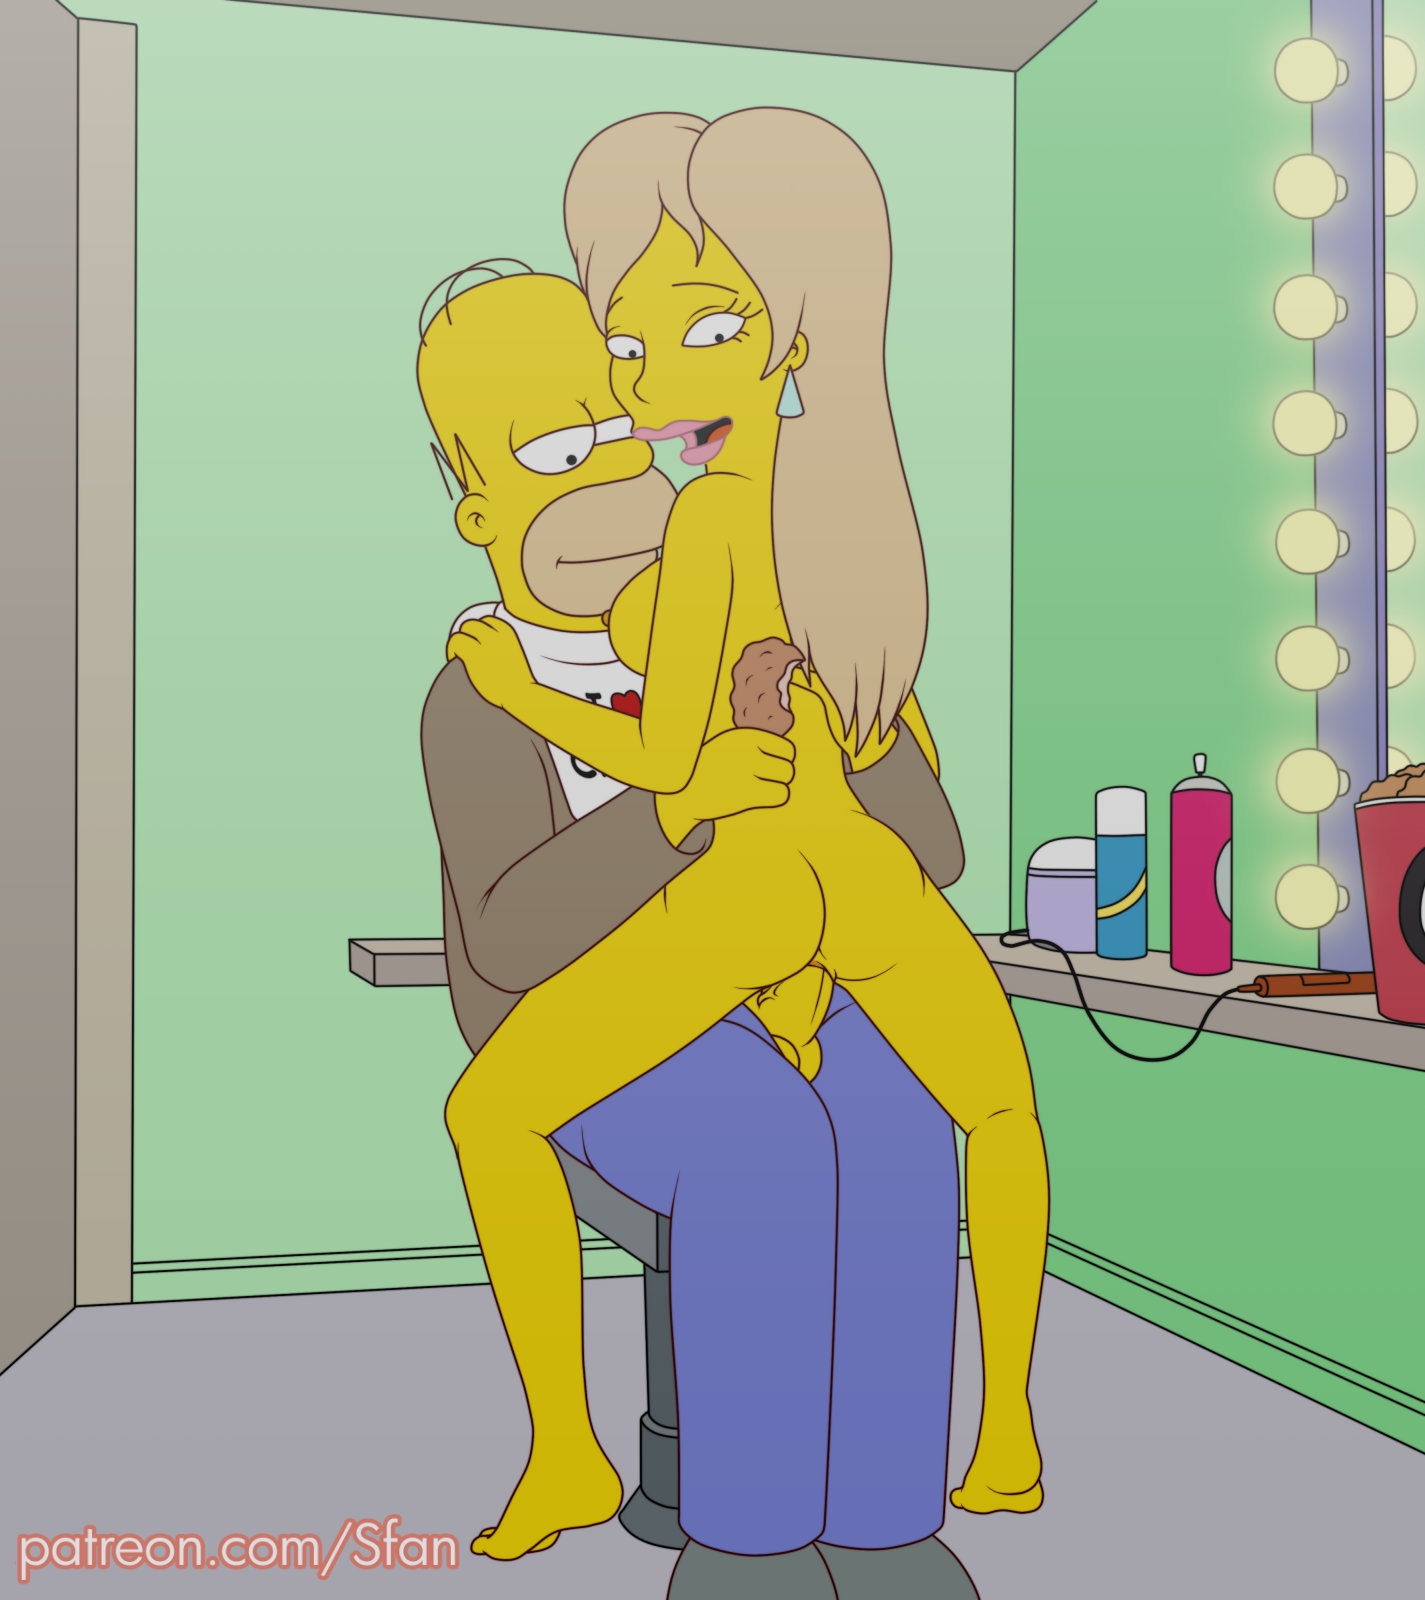 Fixed! Whoa homer simpson porno need